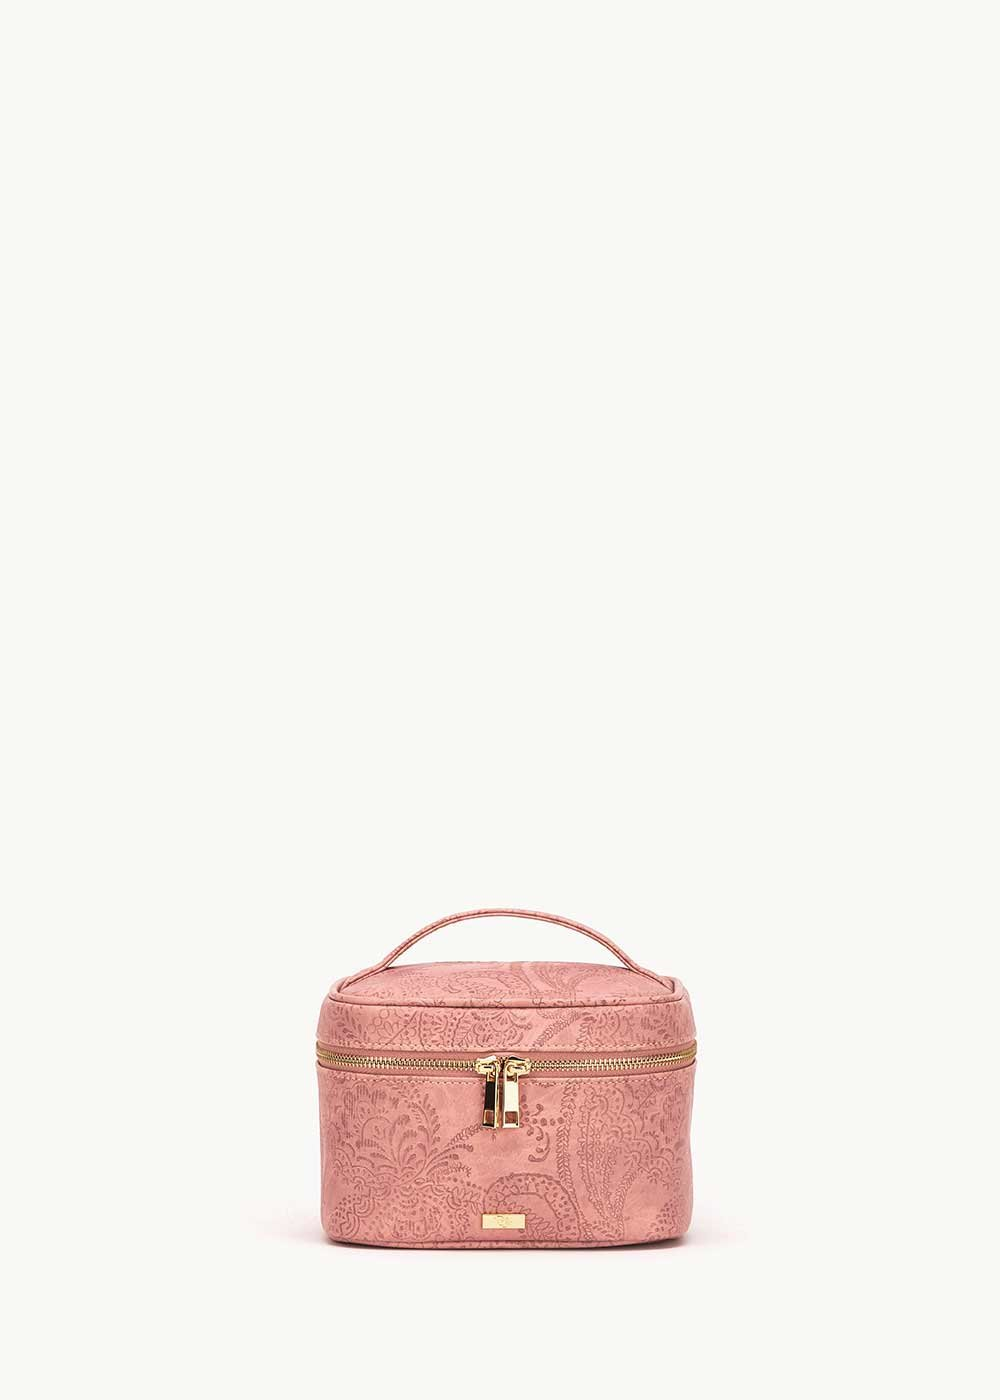 Babie vanity case with cashmere effect - Skin - Woman